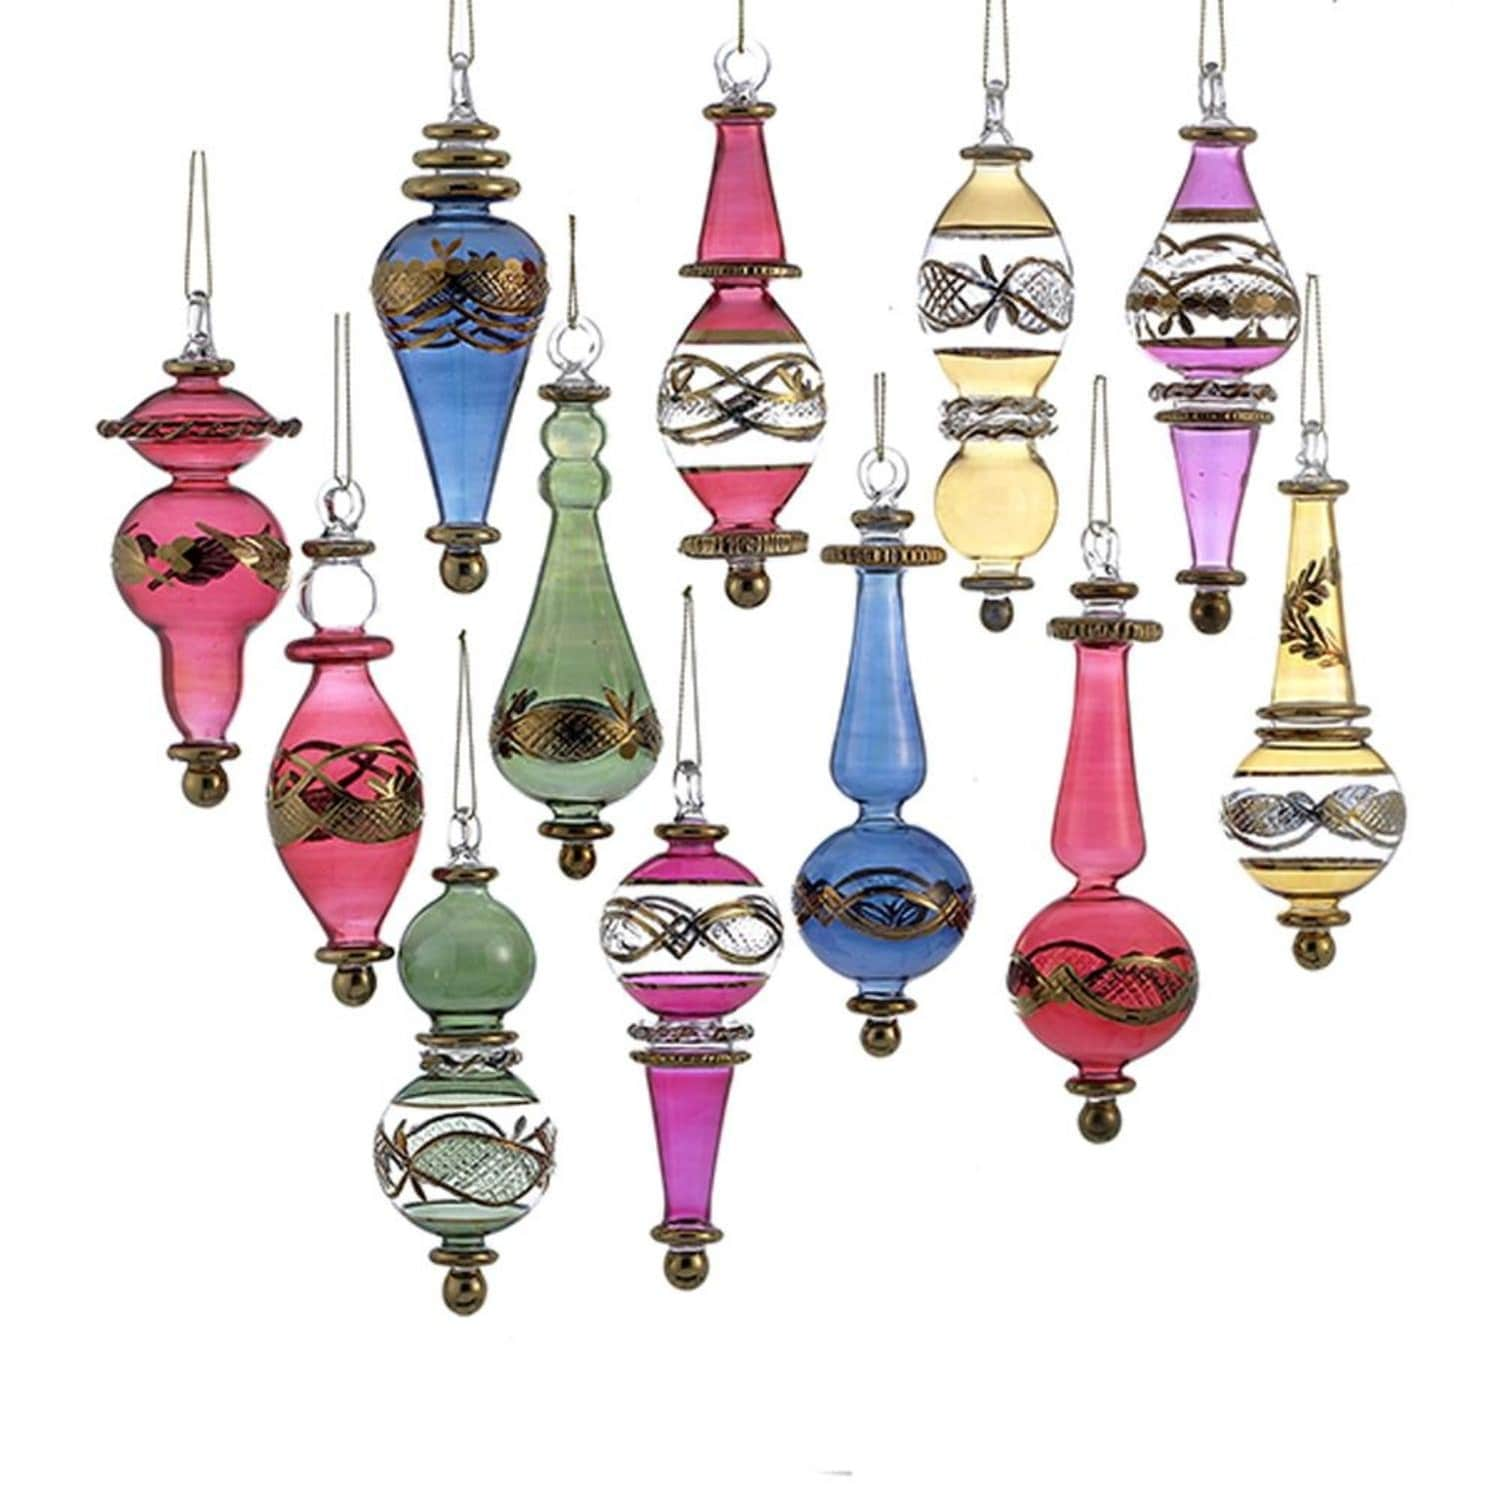 Set Of 12 Vibrantly Colored Decorative Christmas Glass Drop Ornaments